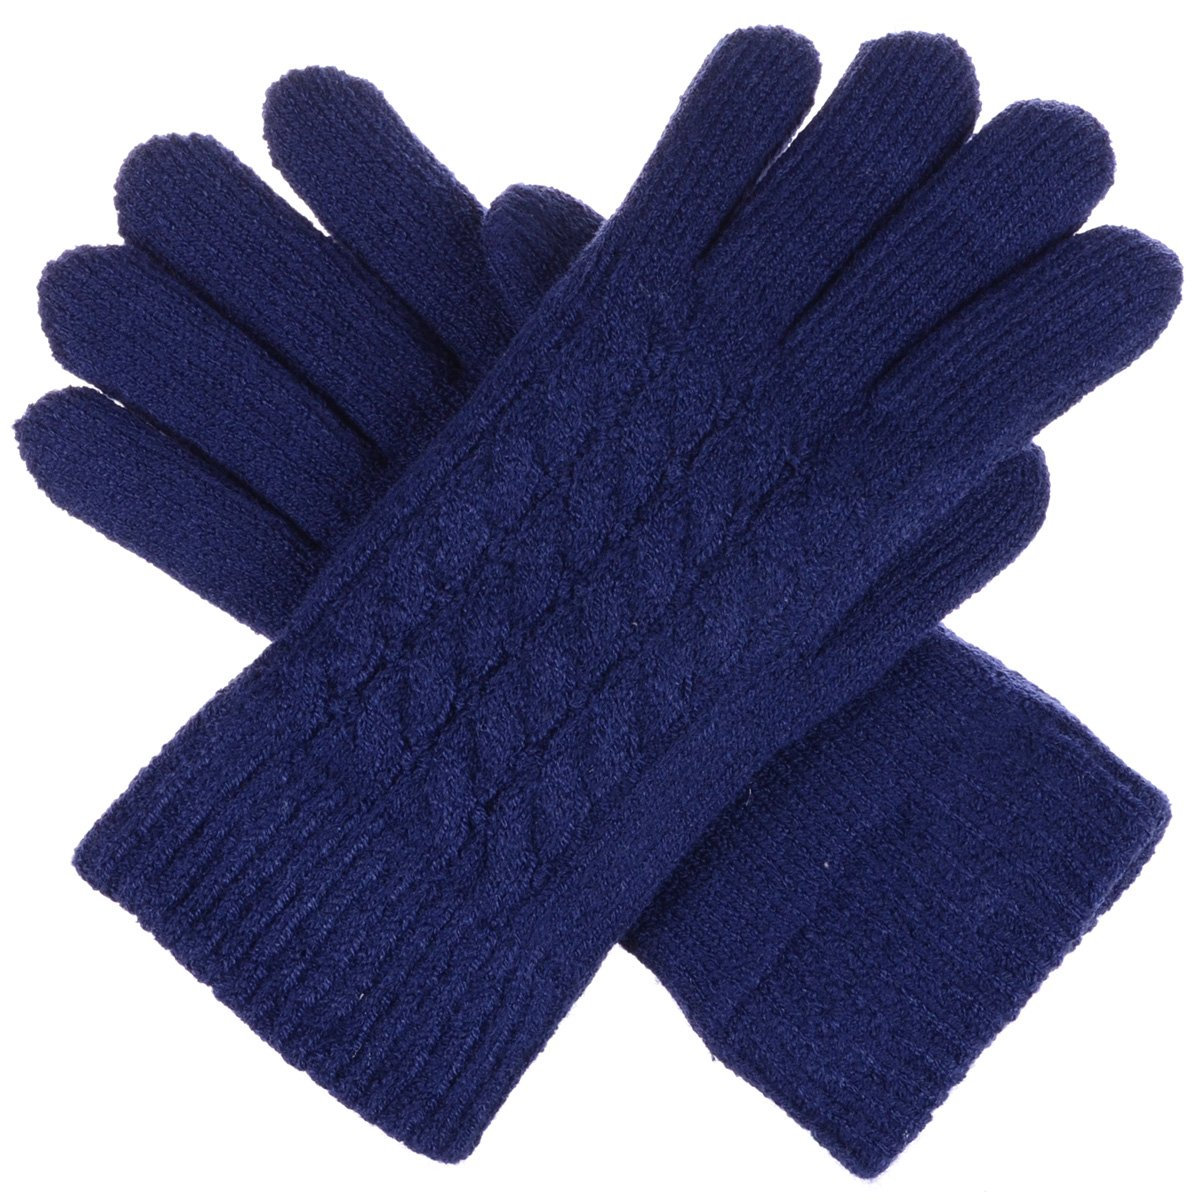 BYOS Women Winter Classic Cable Ultra Warm Soft Plush Faux Fur Fleece Lined Knit Gloves (Navy Cable)